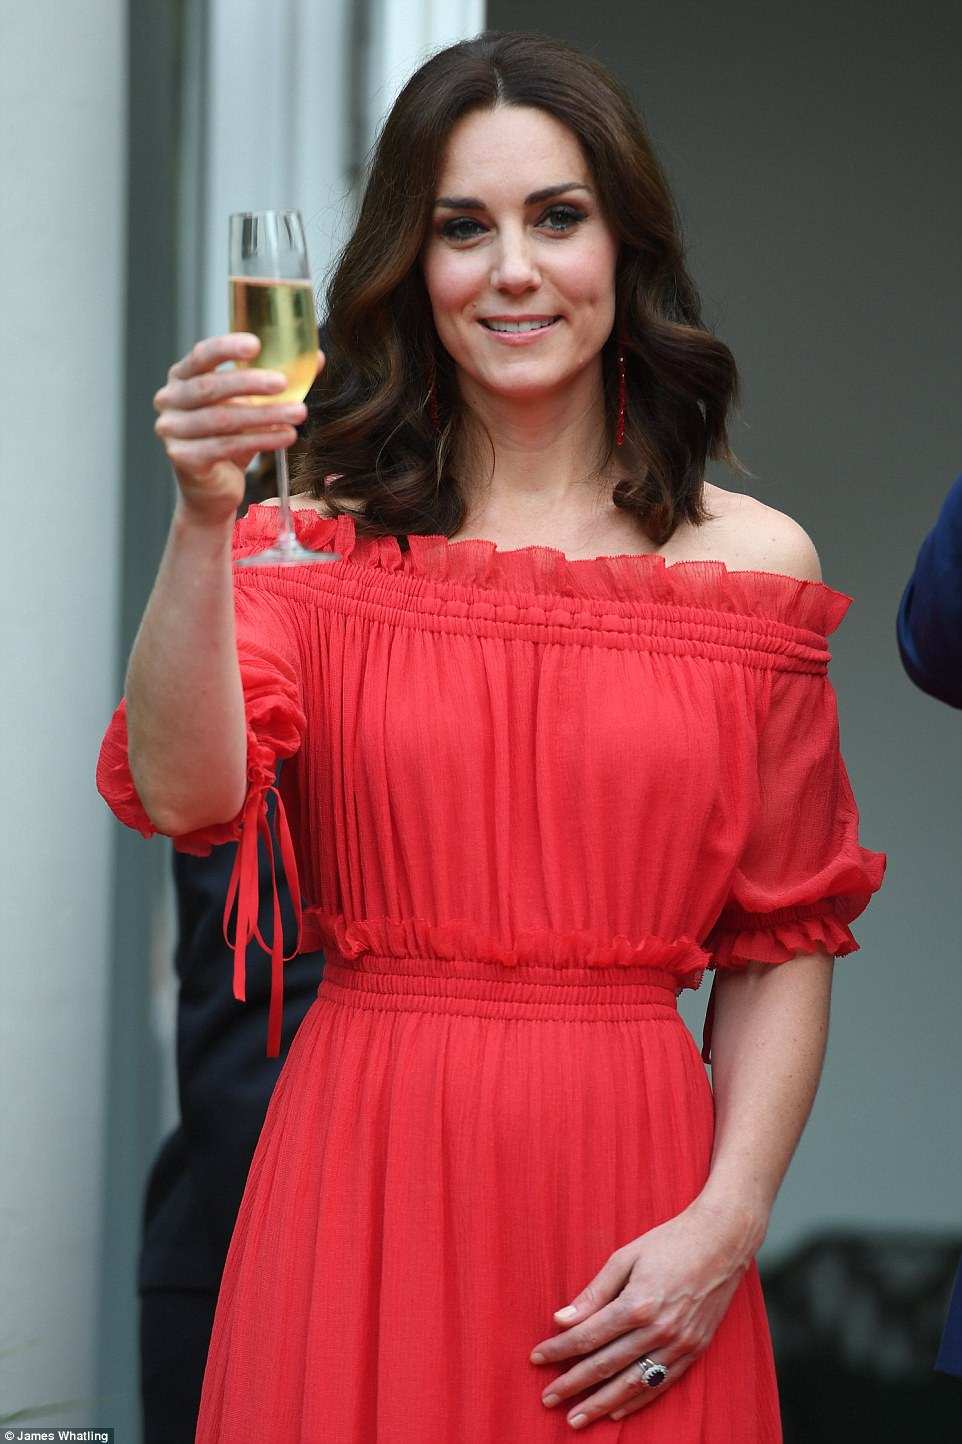 Kate-Middleton-Red-Alexander-McQueen-Maxi-Dress-Berlin-Germany-Tour